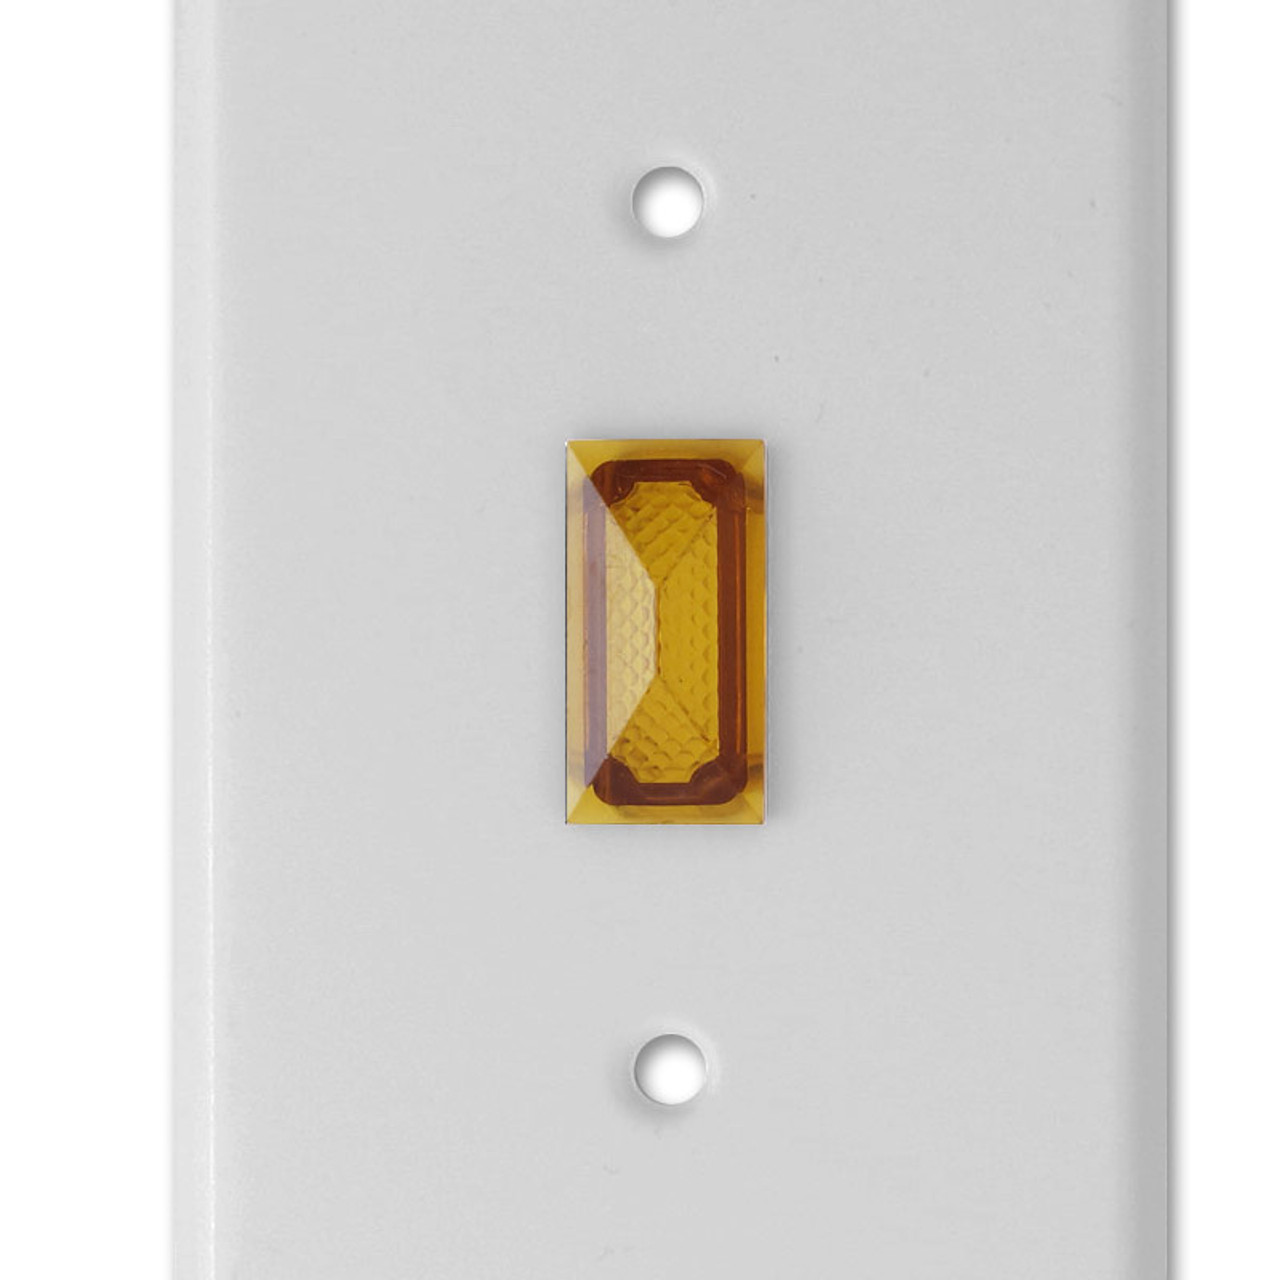 Amber Image Switch Cover Night Light Home Decor Double Light Cabinet knob